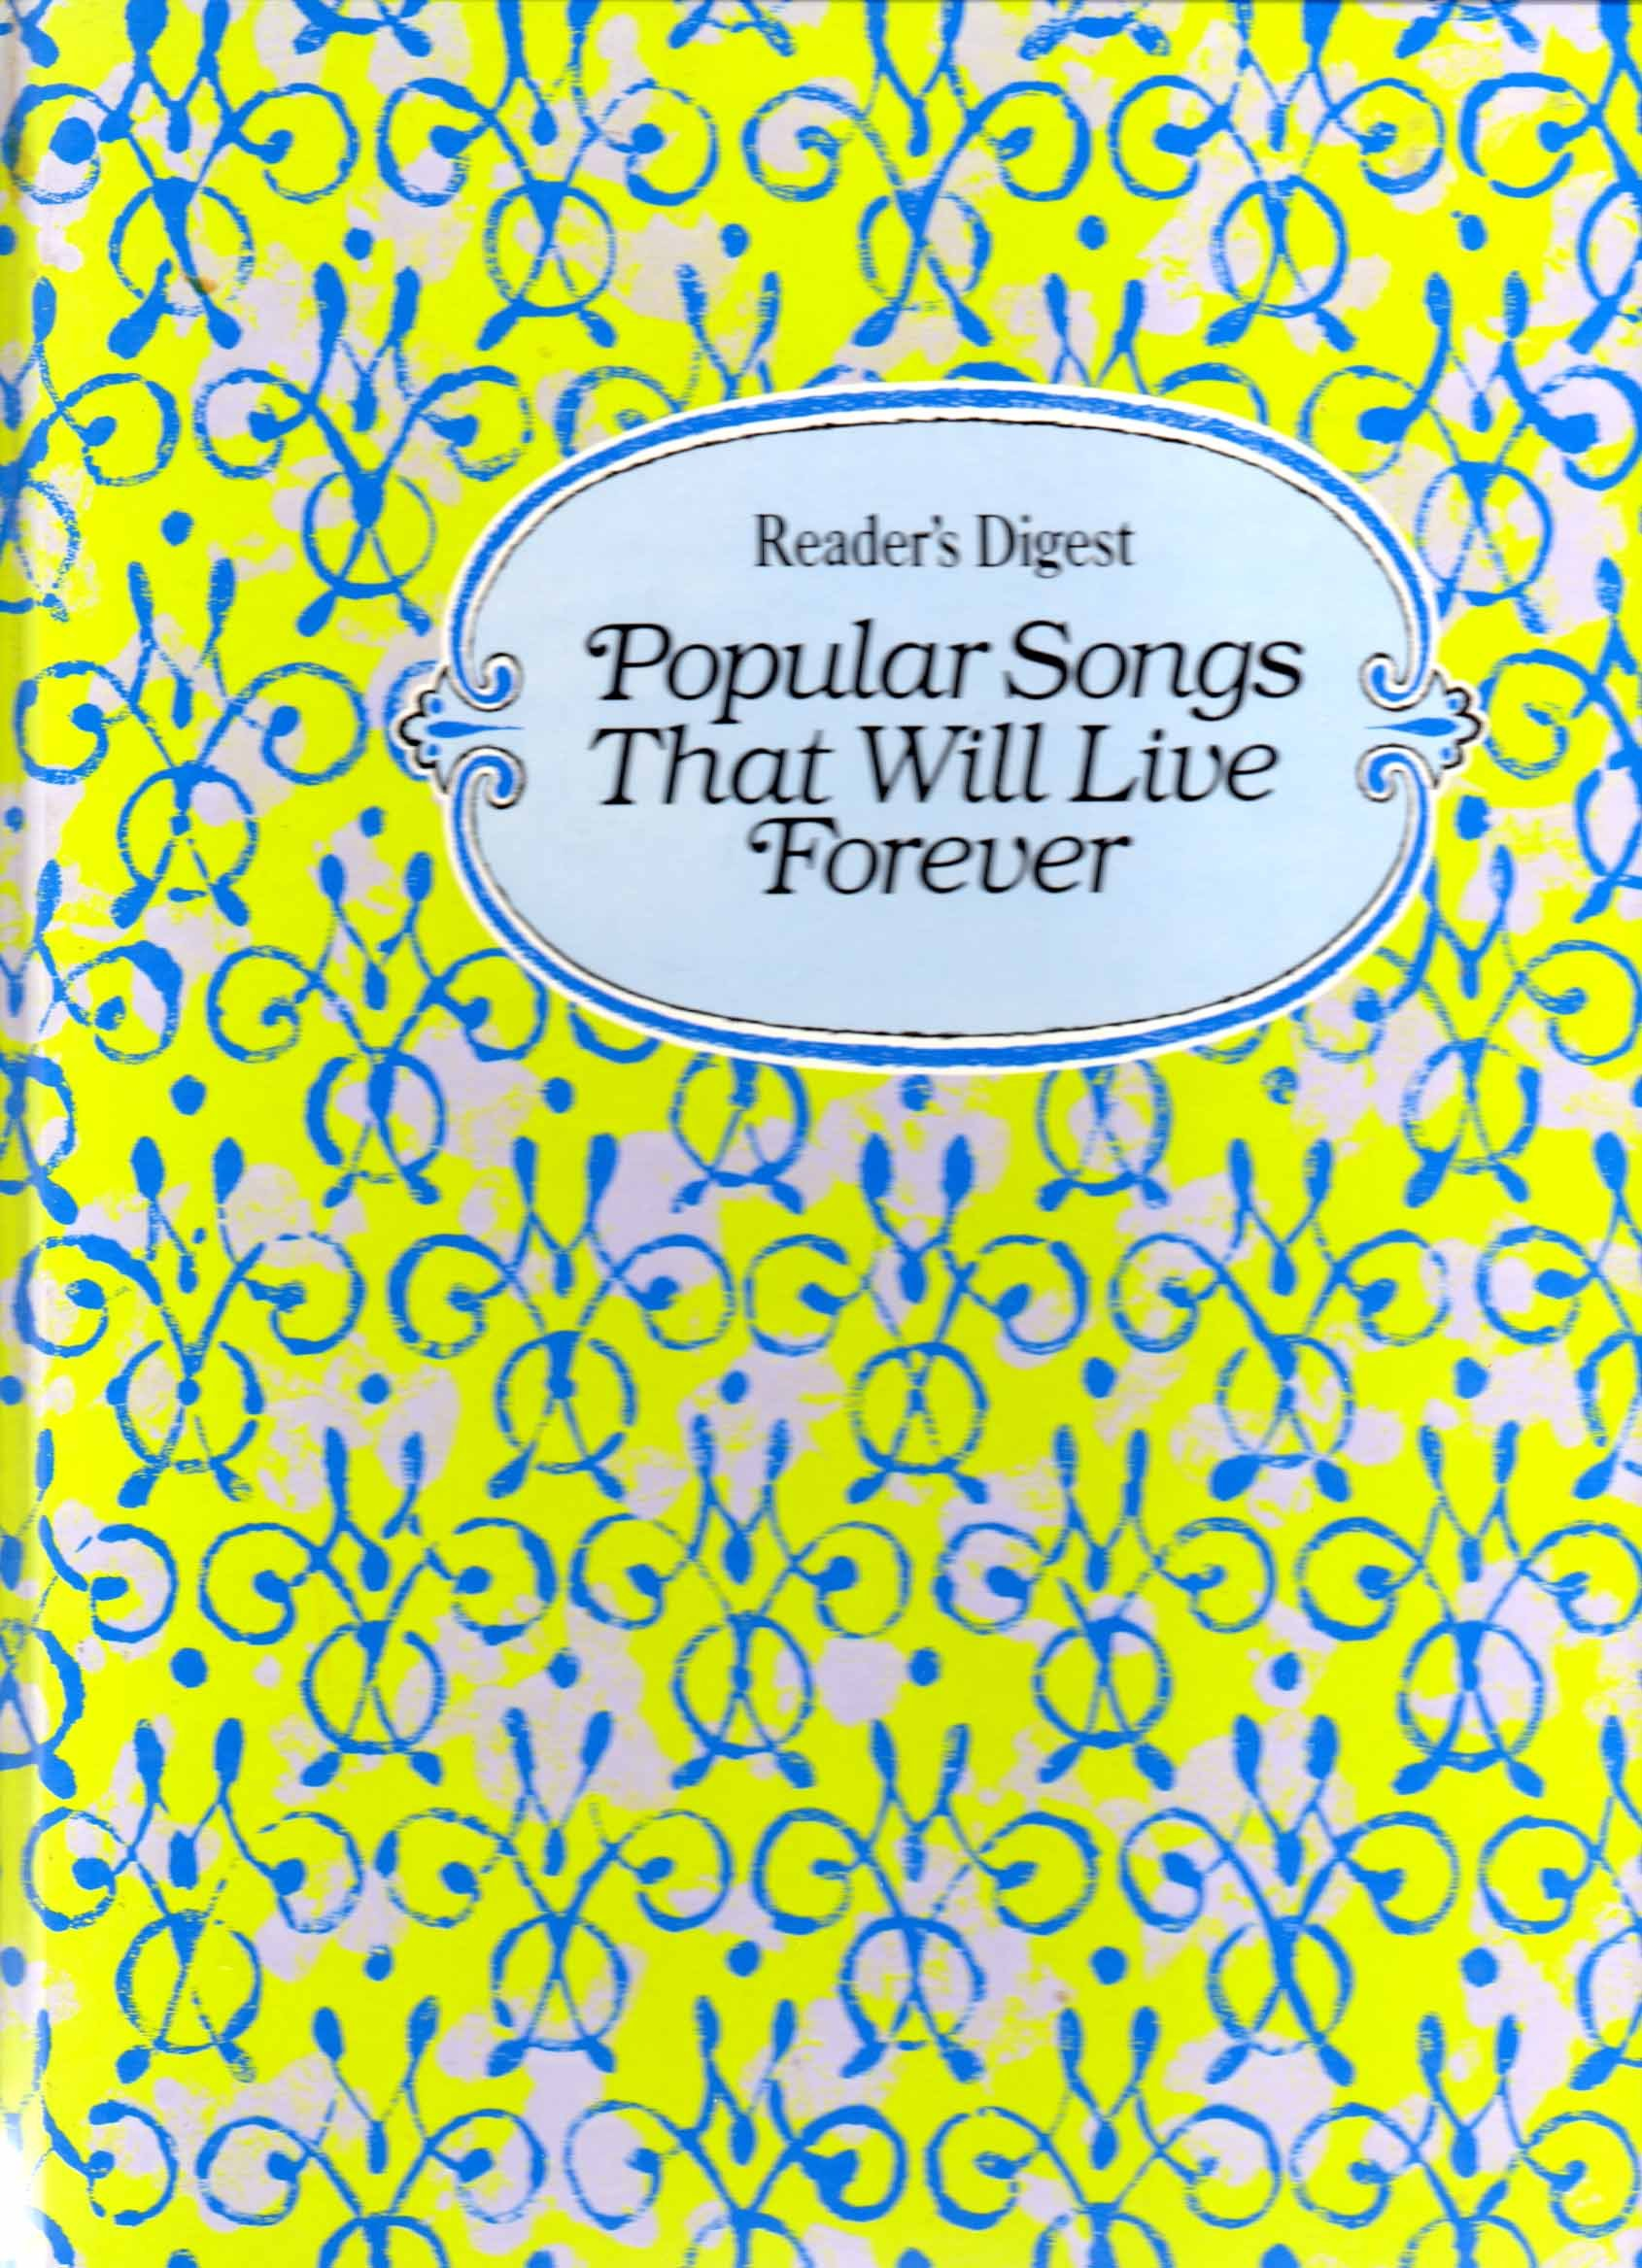 Readers Digest Popular Songs That Will Live Forever William L